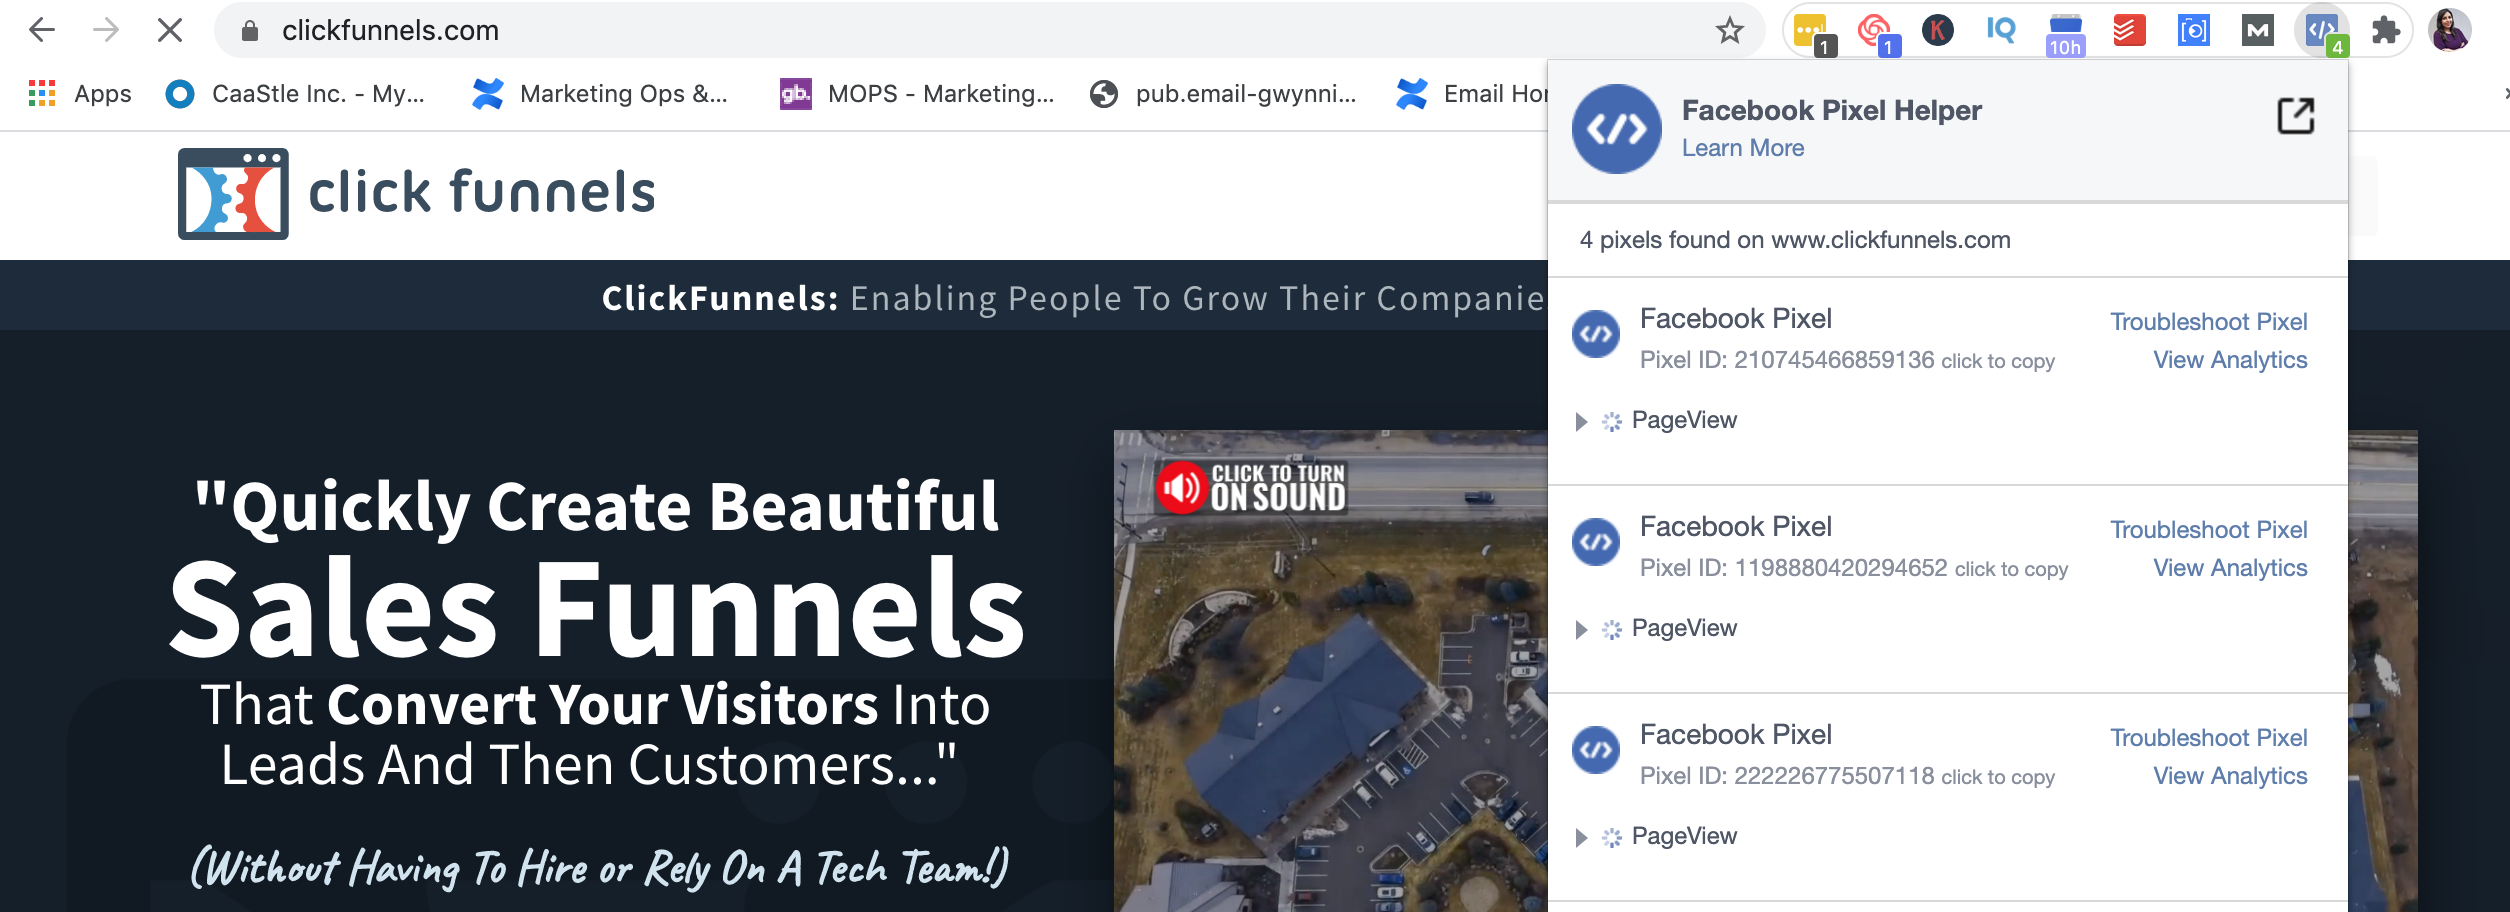 Facebook Pixel: The Ultimate Guide